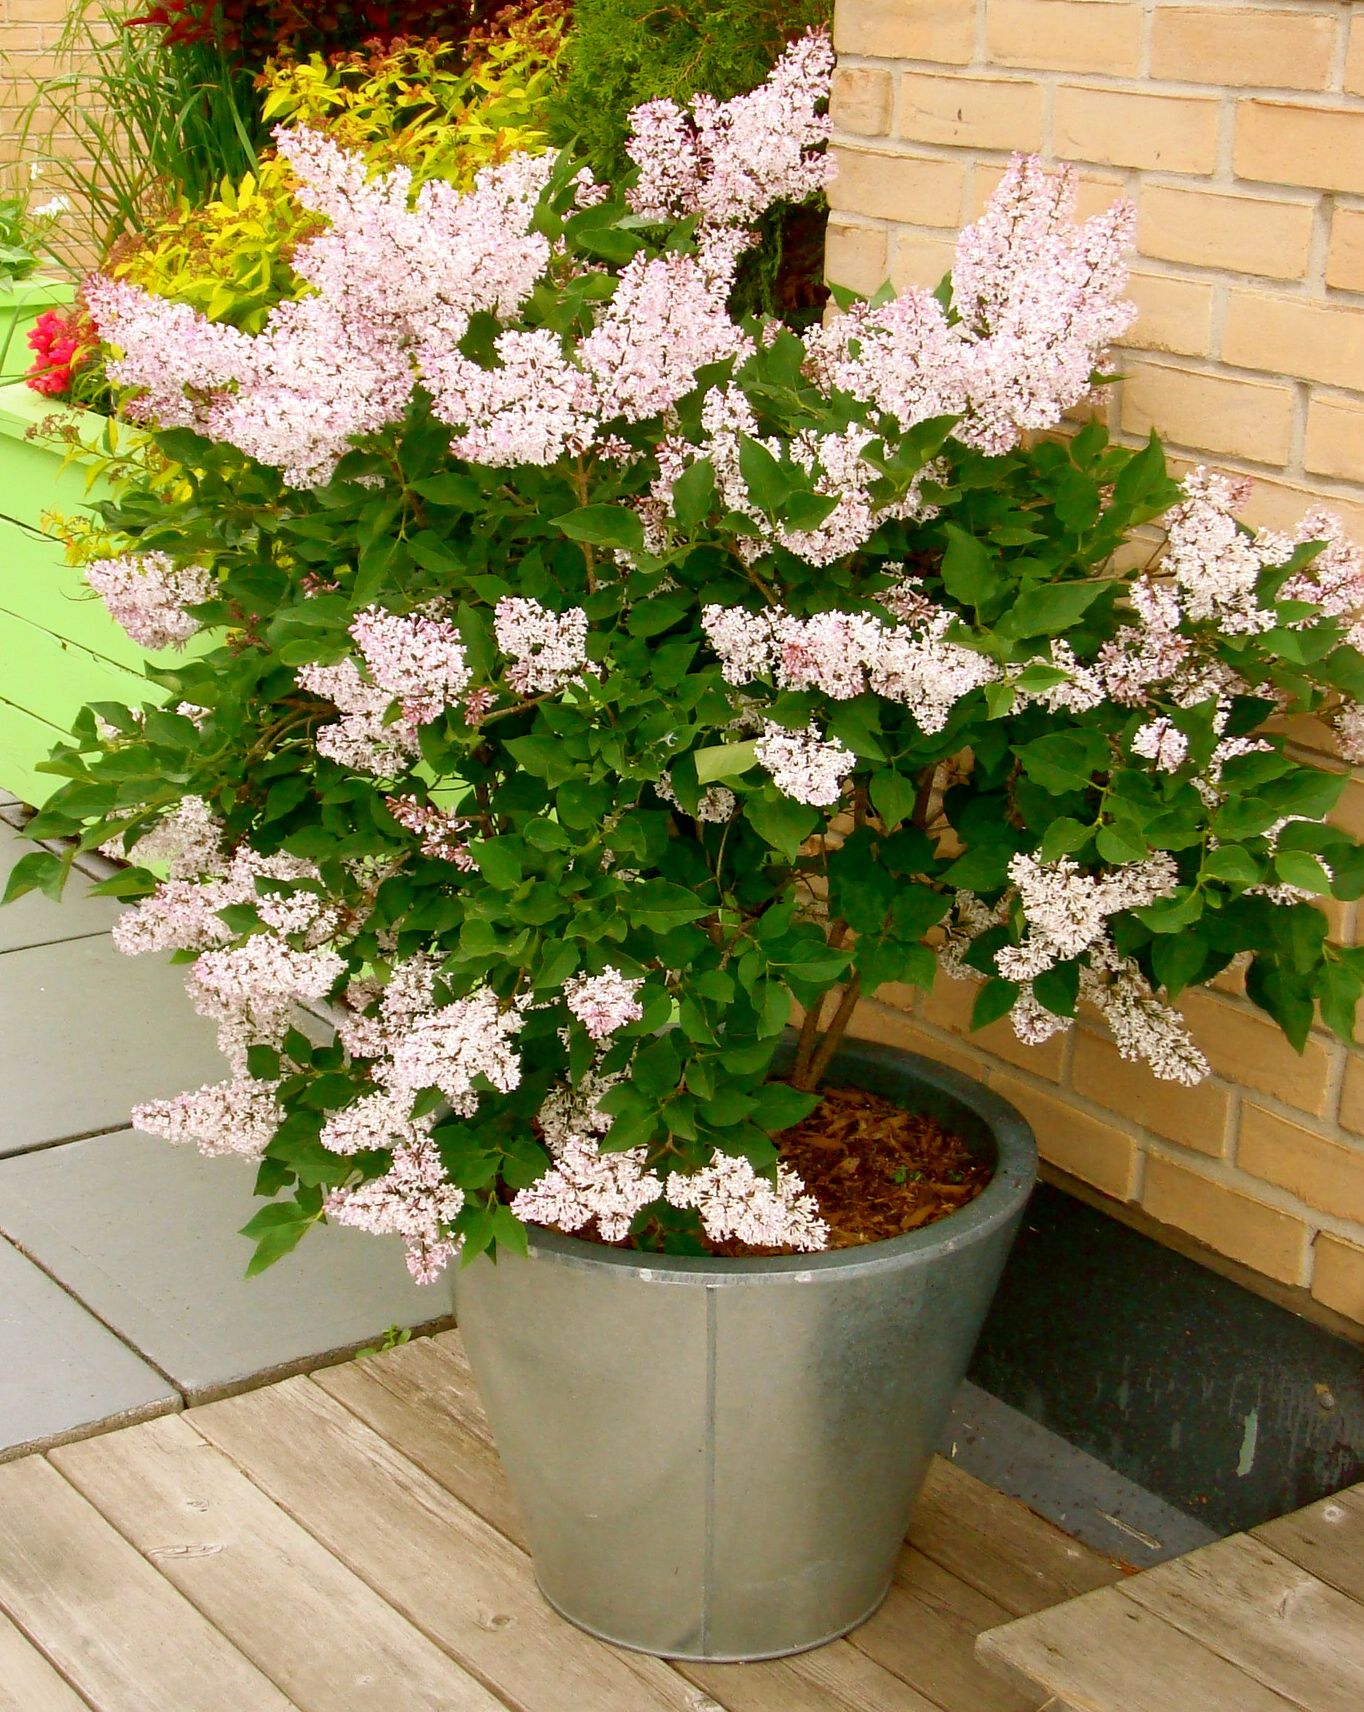 Roses In Garden: SHRUBS Why Limit Your Containers To Flowers? Shrubs Grow